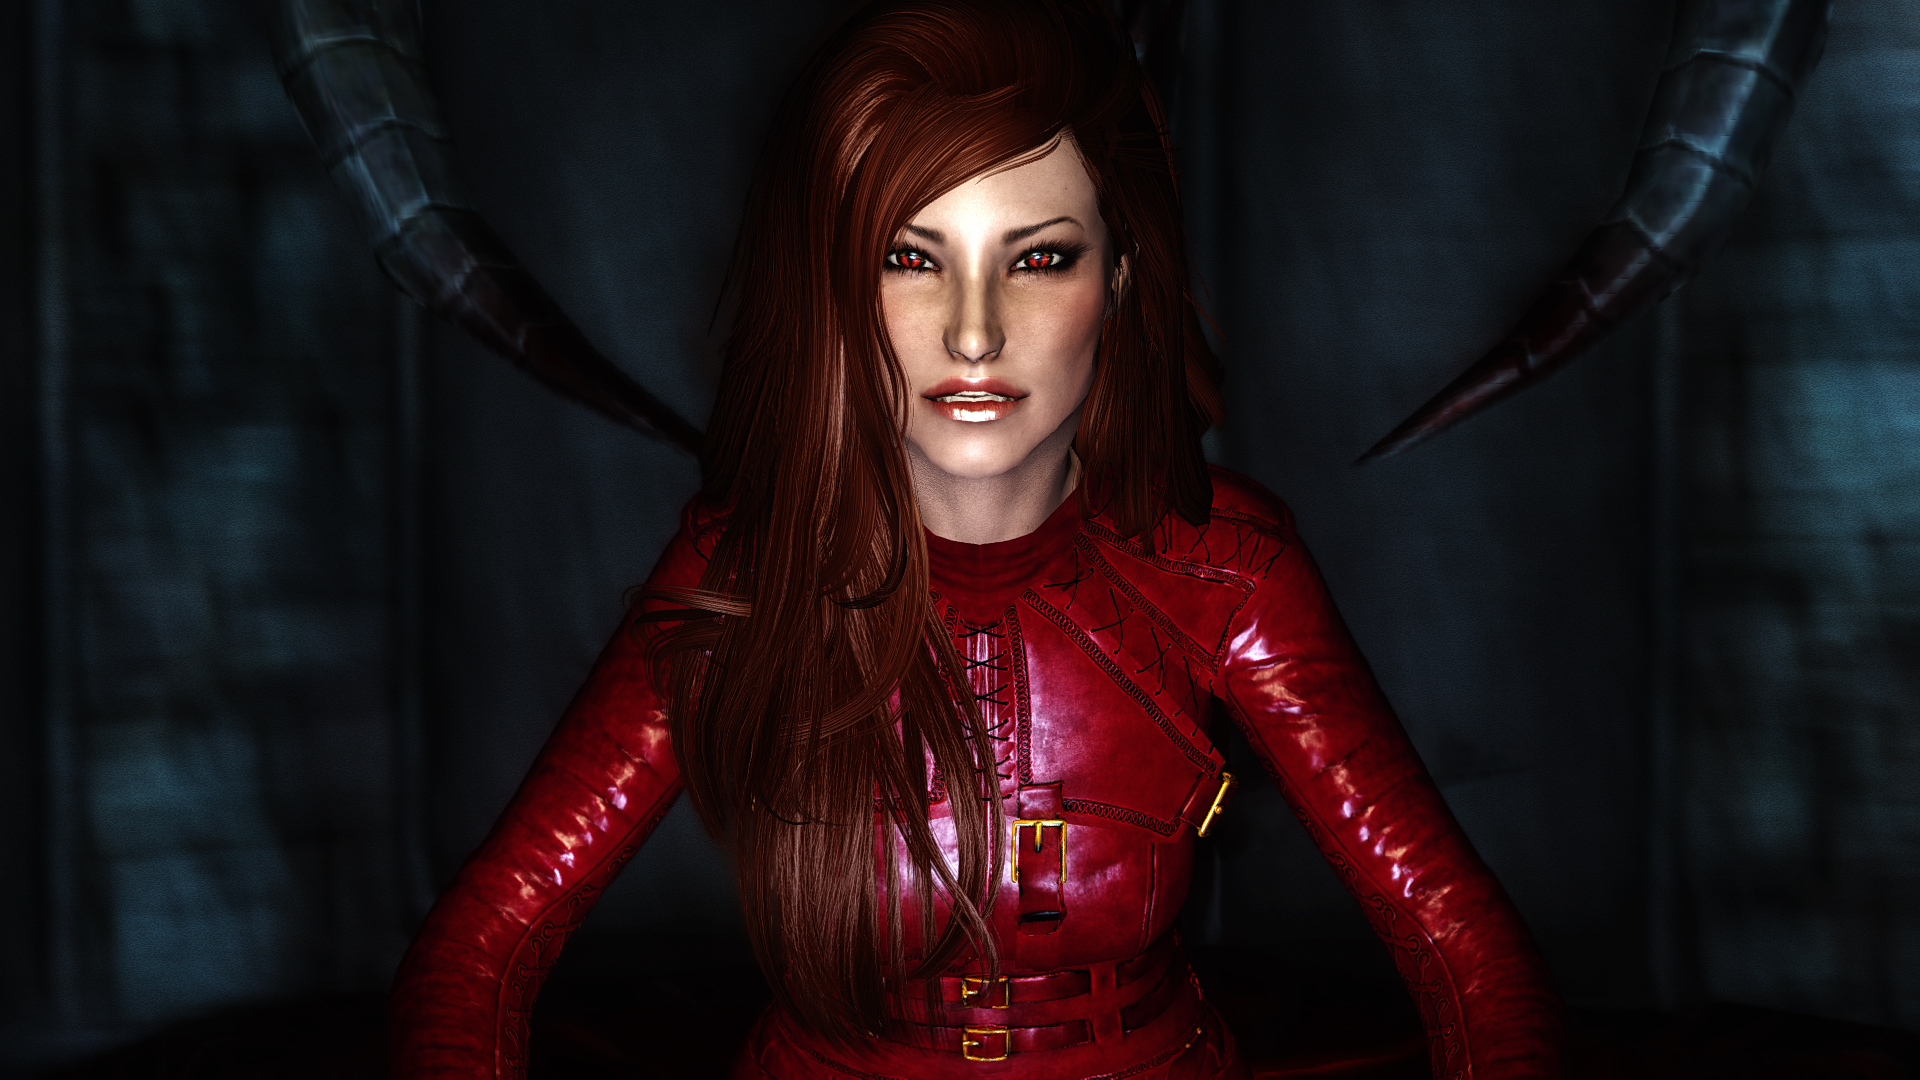 Mord Sith Cara Armor - Red to attack